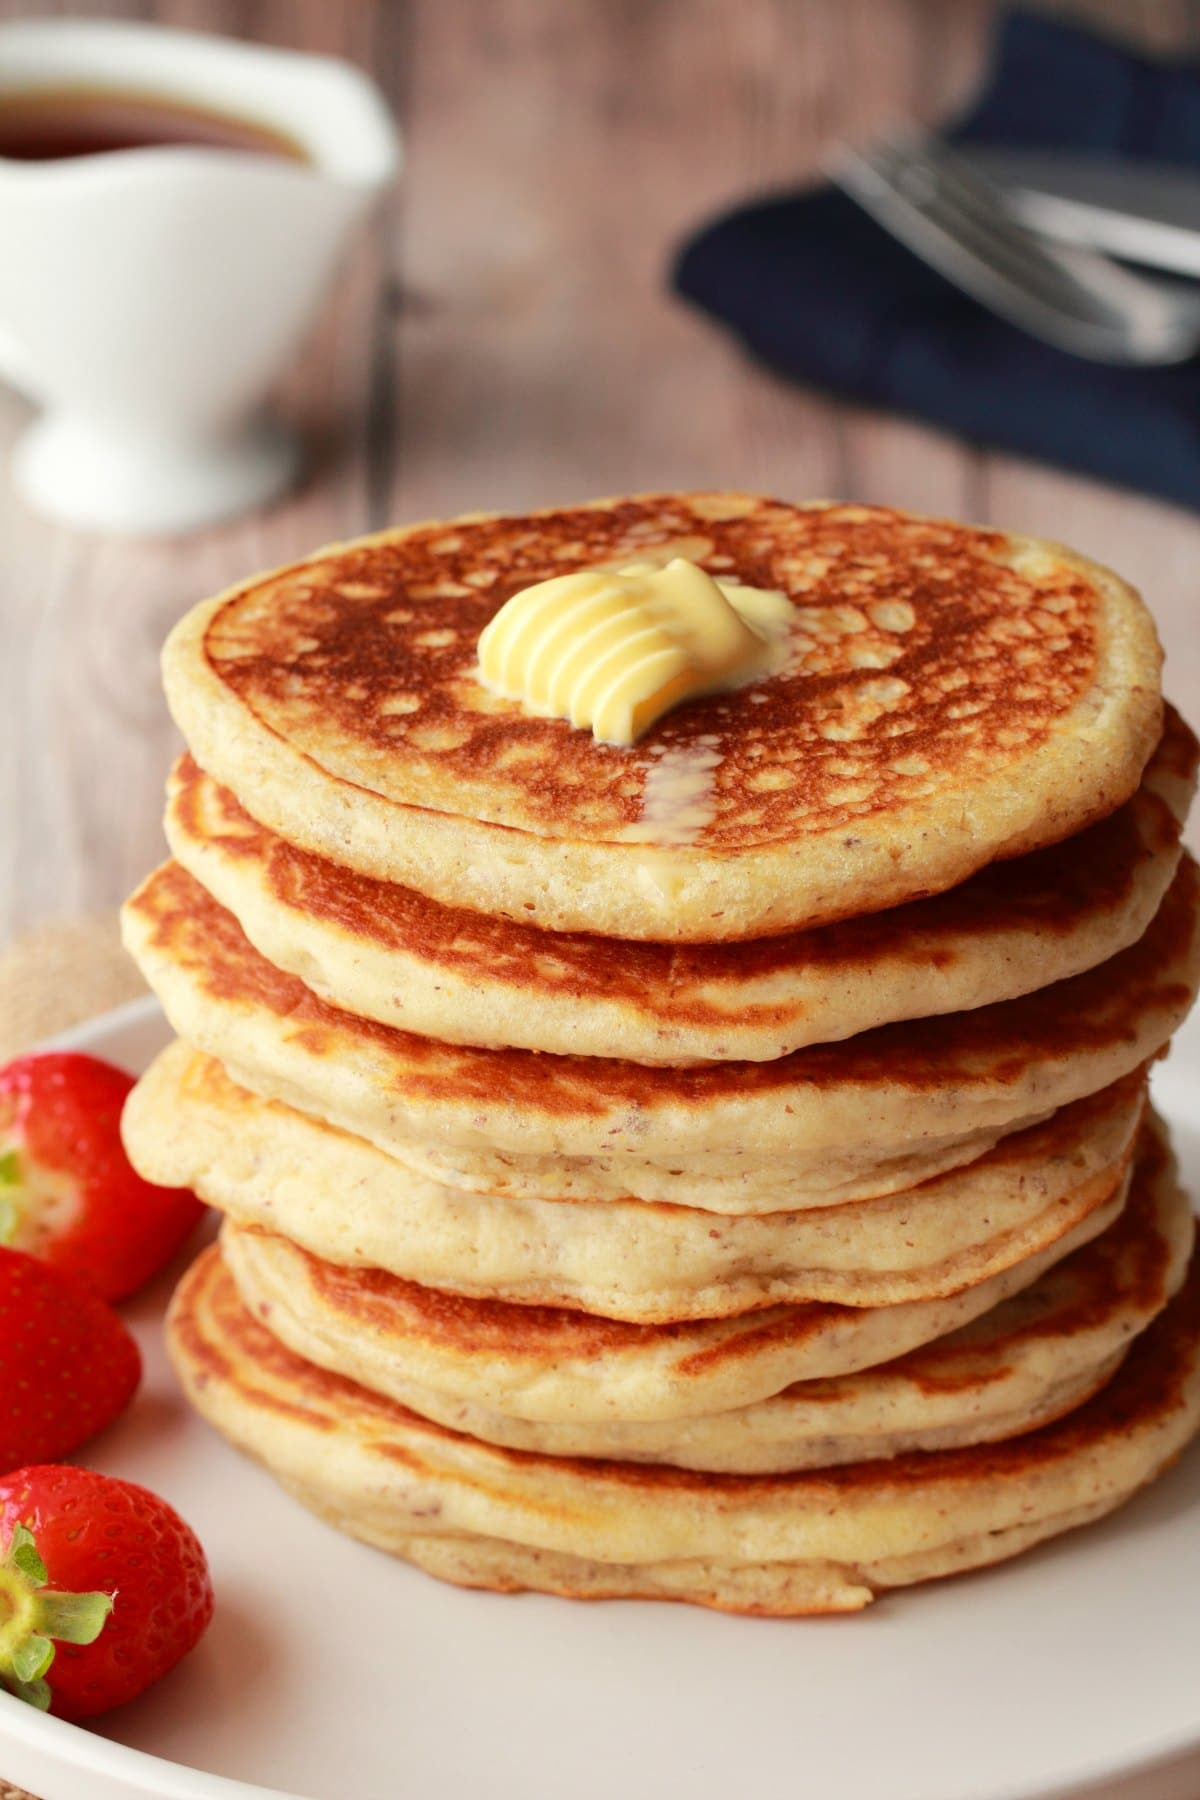 A stack of vegan pancakes with a pat of butter on top, some strawberries and a jug of syrup.